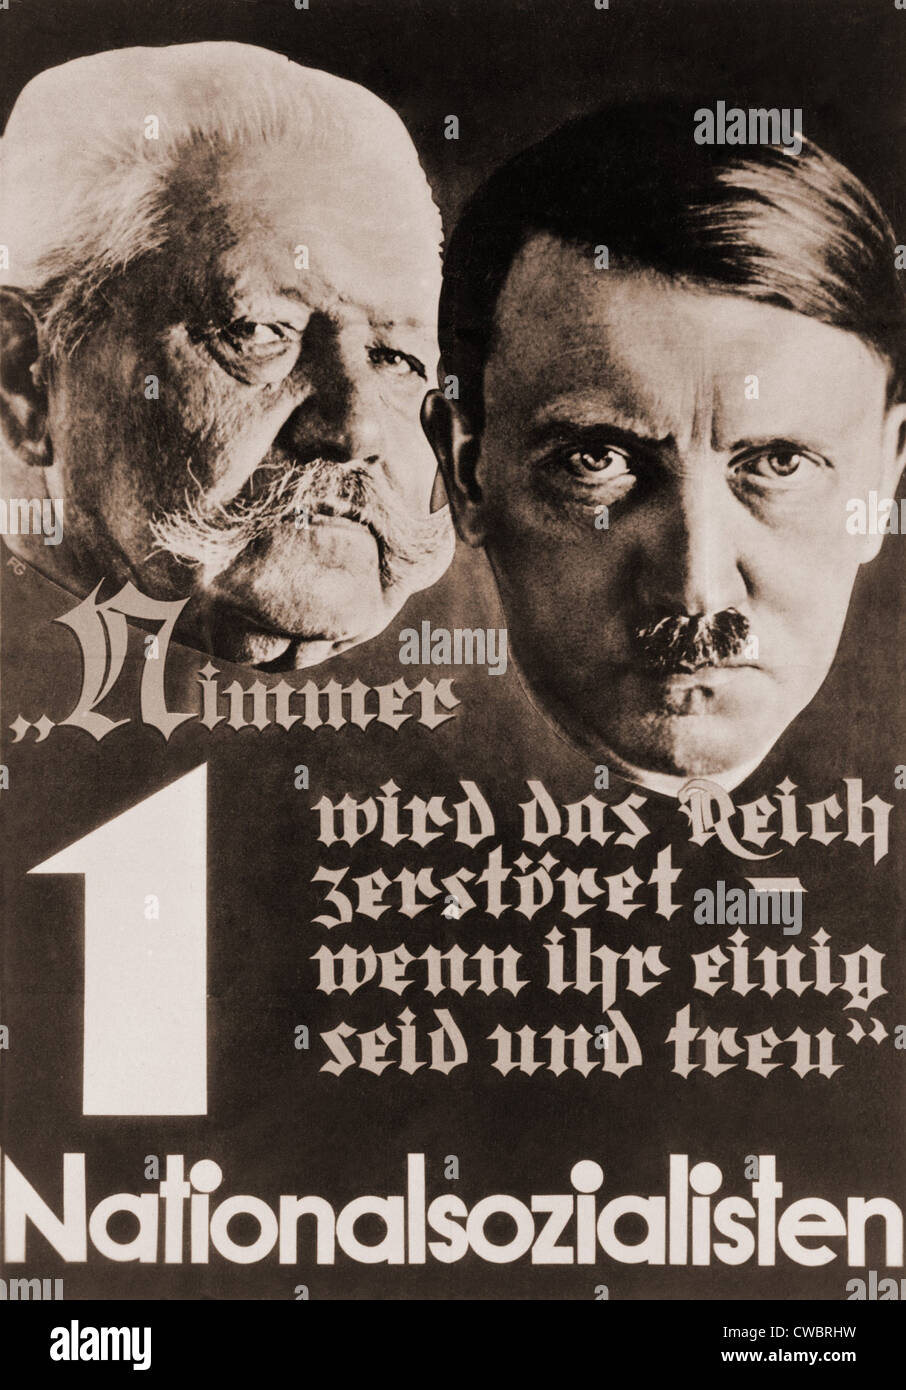 nazi poster with images of adolf hitler and paul von hindenburg stock photo 50047141 alamy. Black Bedroom Furniture Sets. Home Design Ideas